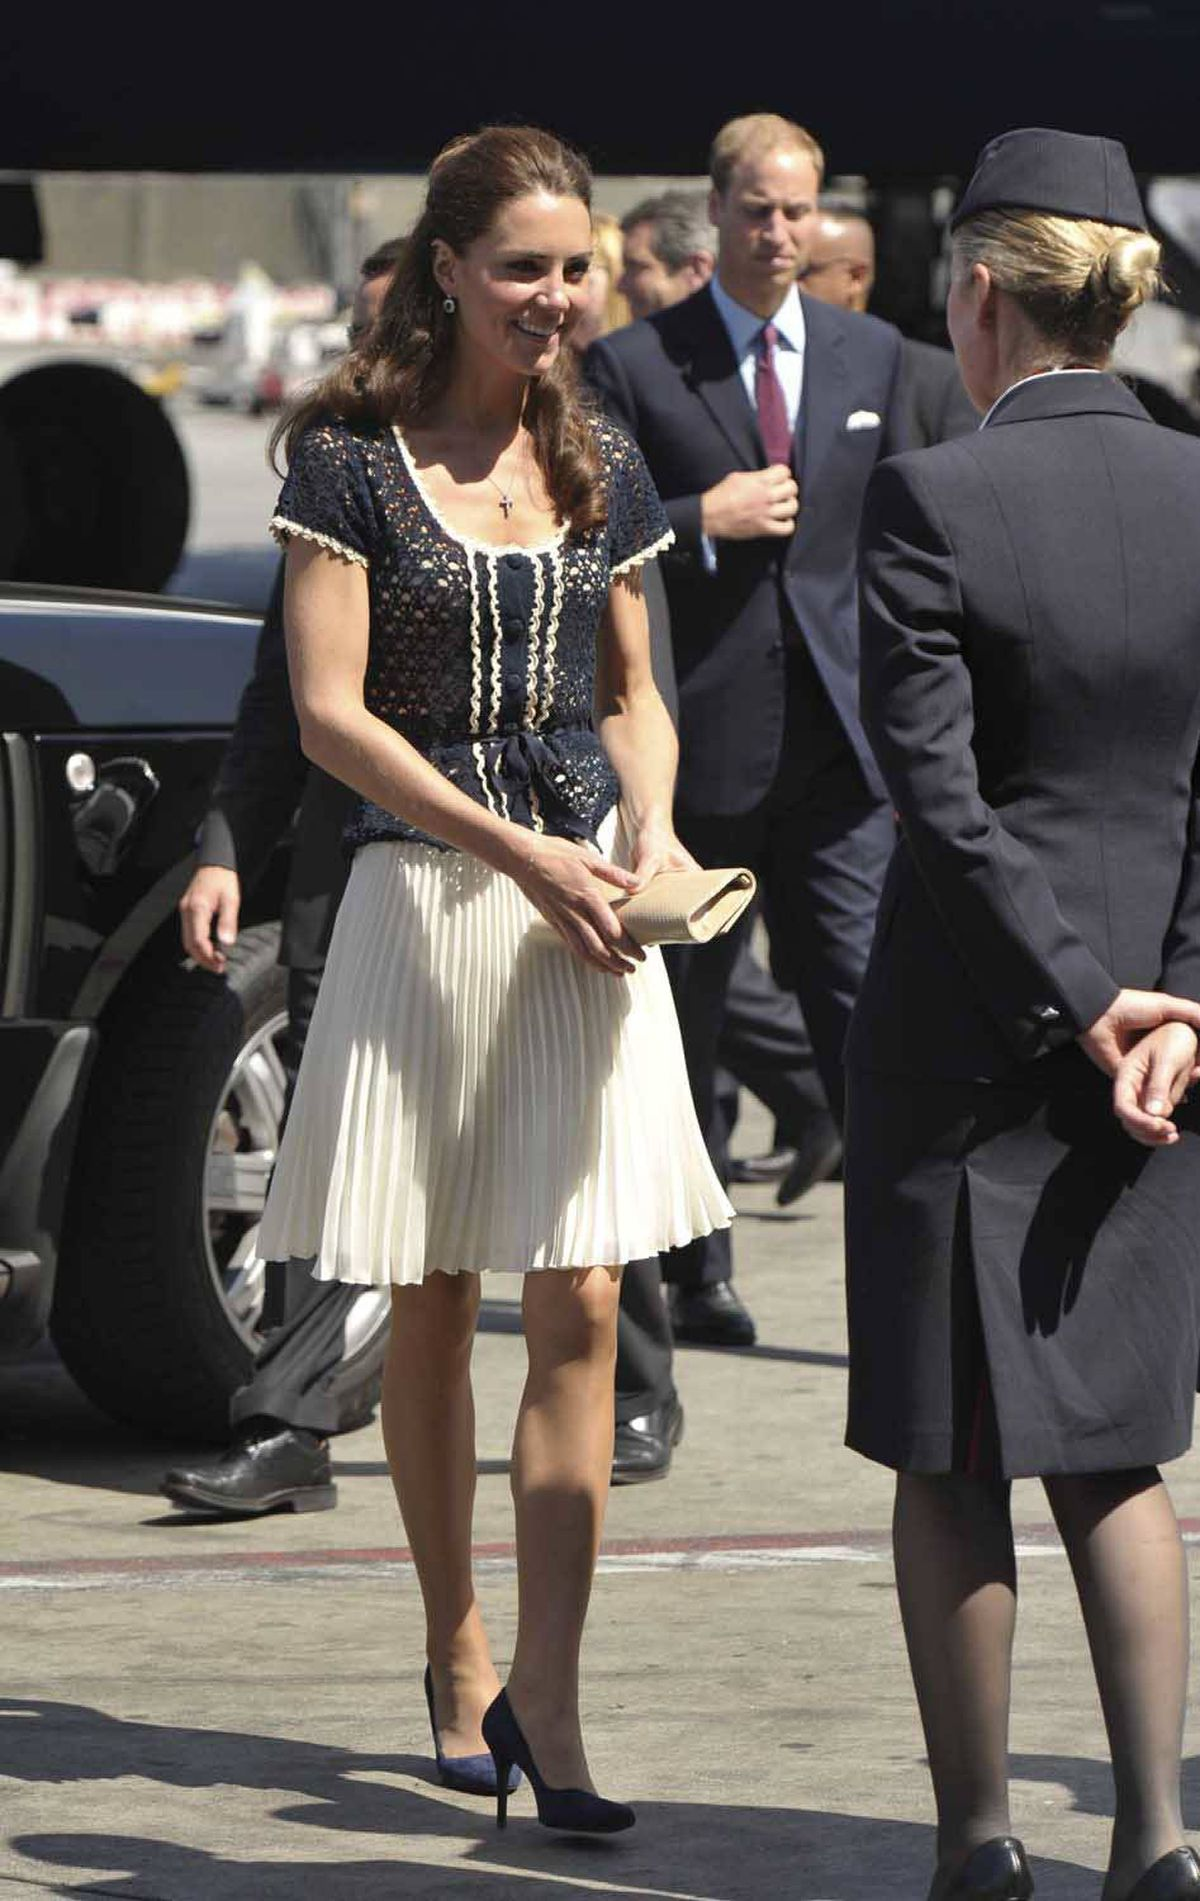 Kate departs Los Angeles on July 10 wearing an outfit from Whistles, a high street chain.